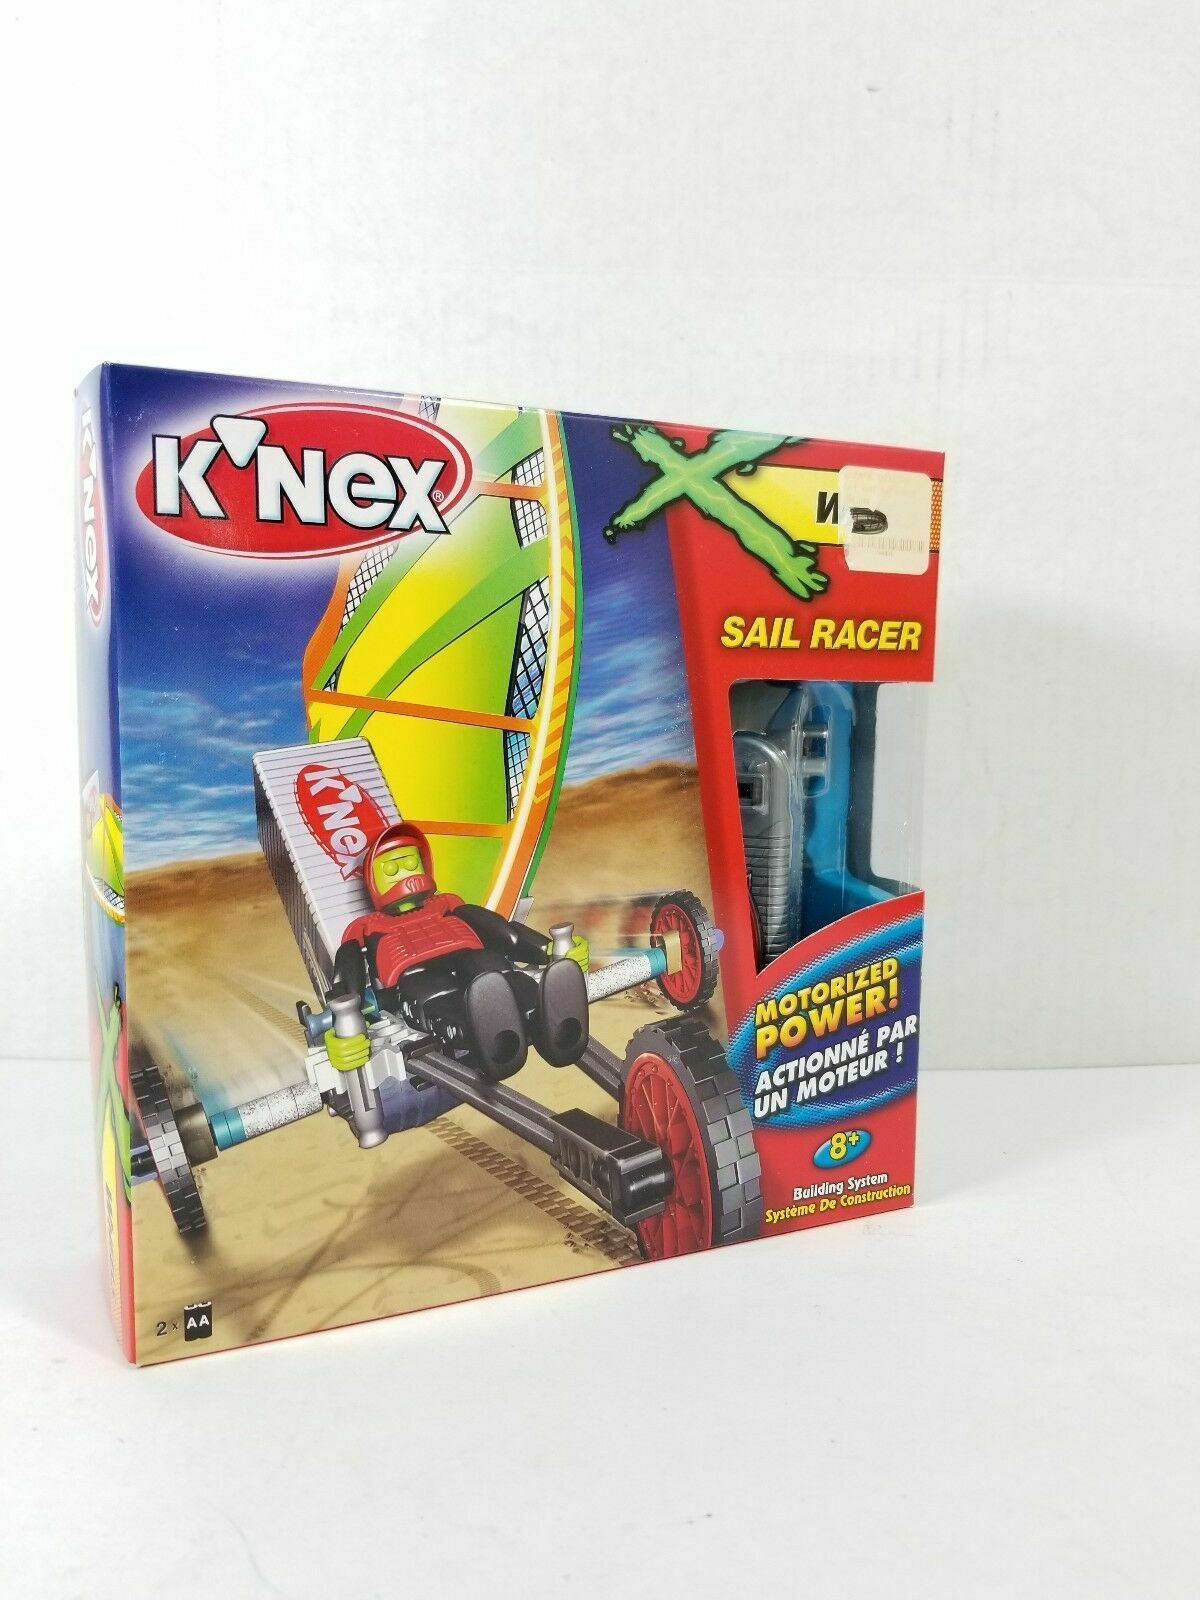 K'Nex Wheels Sail Racer Motorized Power with Driver 103 pieces NEW